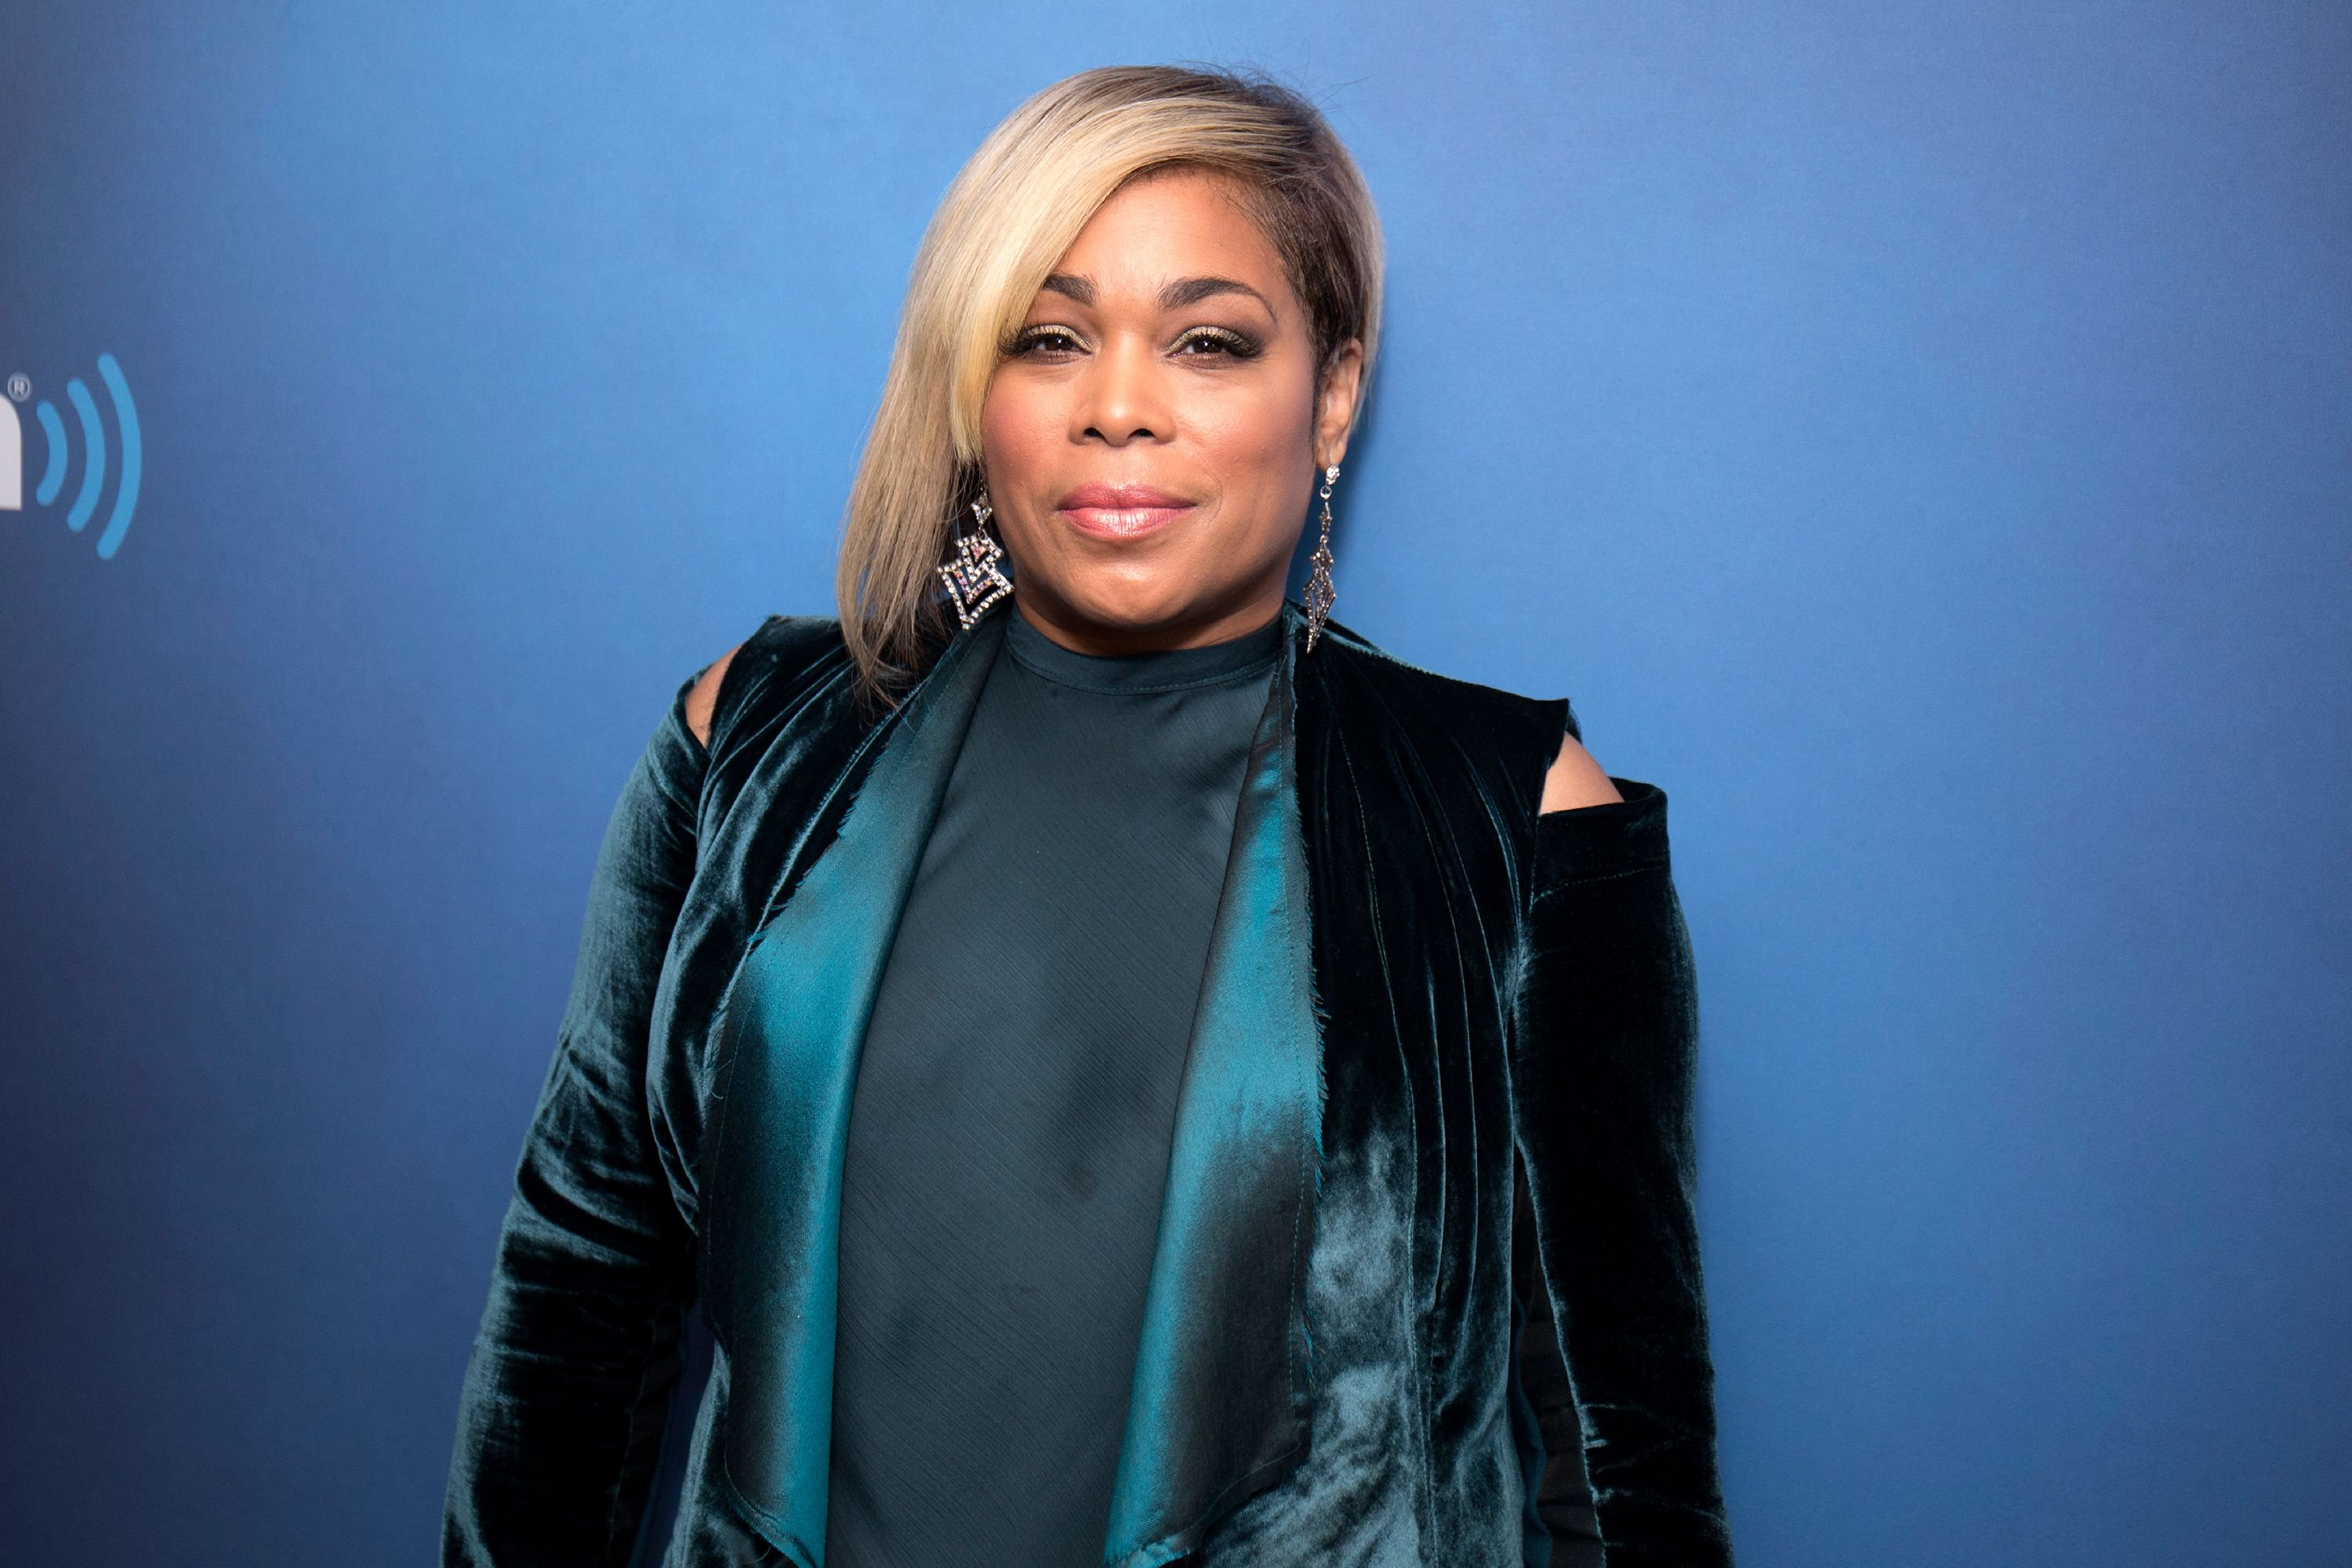 Tionne 'T-Boz' Watkins at the SiriusXM Studios on September 12, 2017, in New York City. | Source: Getty Images